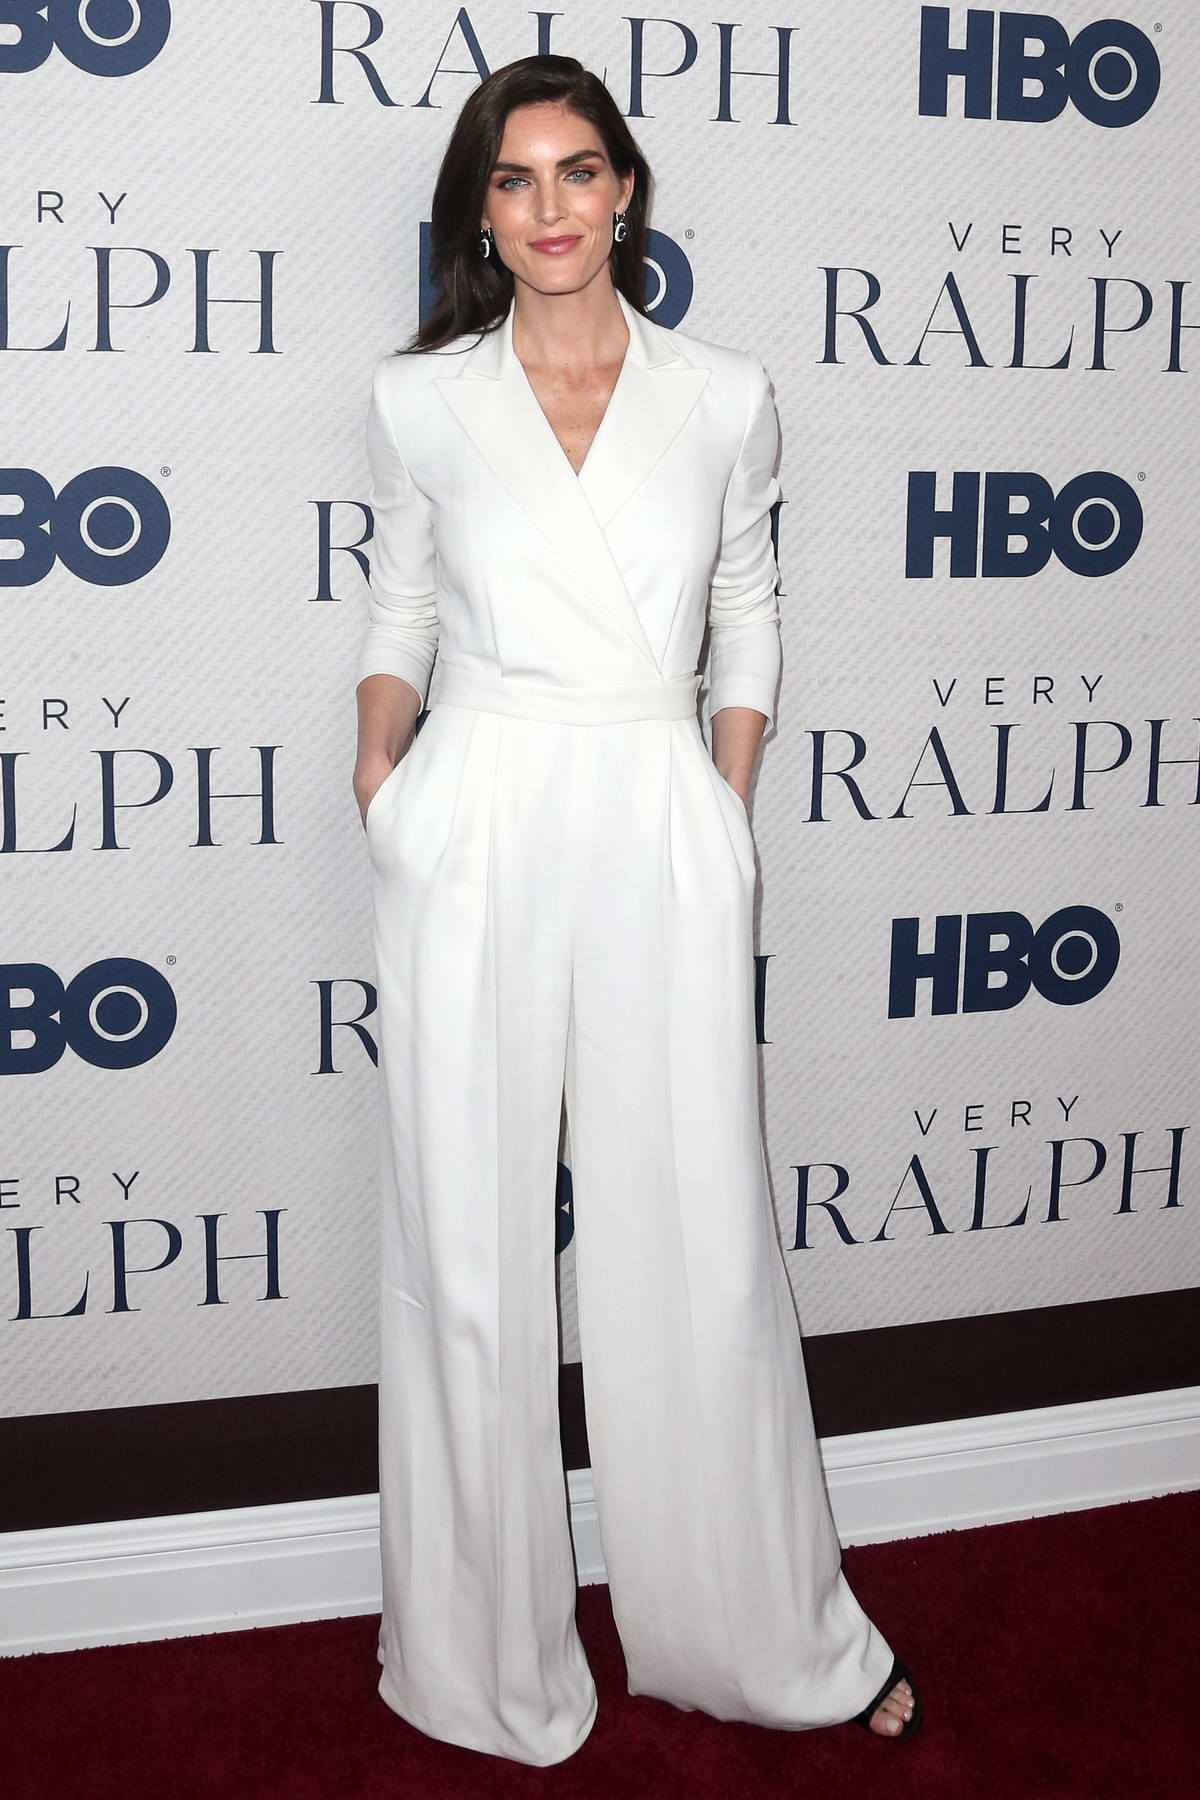 Hilary Rhoda attends the World Premiere of HBO's 'Very Ralph' at the Metropolitan Museum of Art in New York City